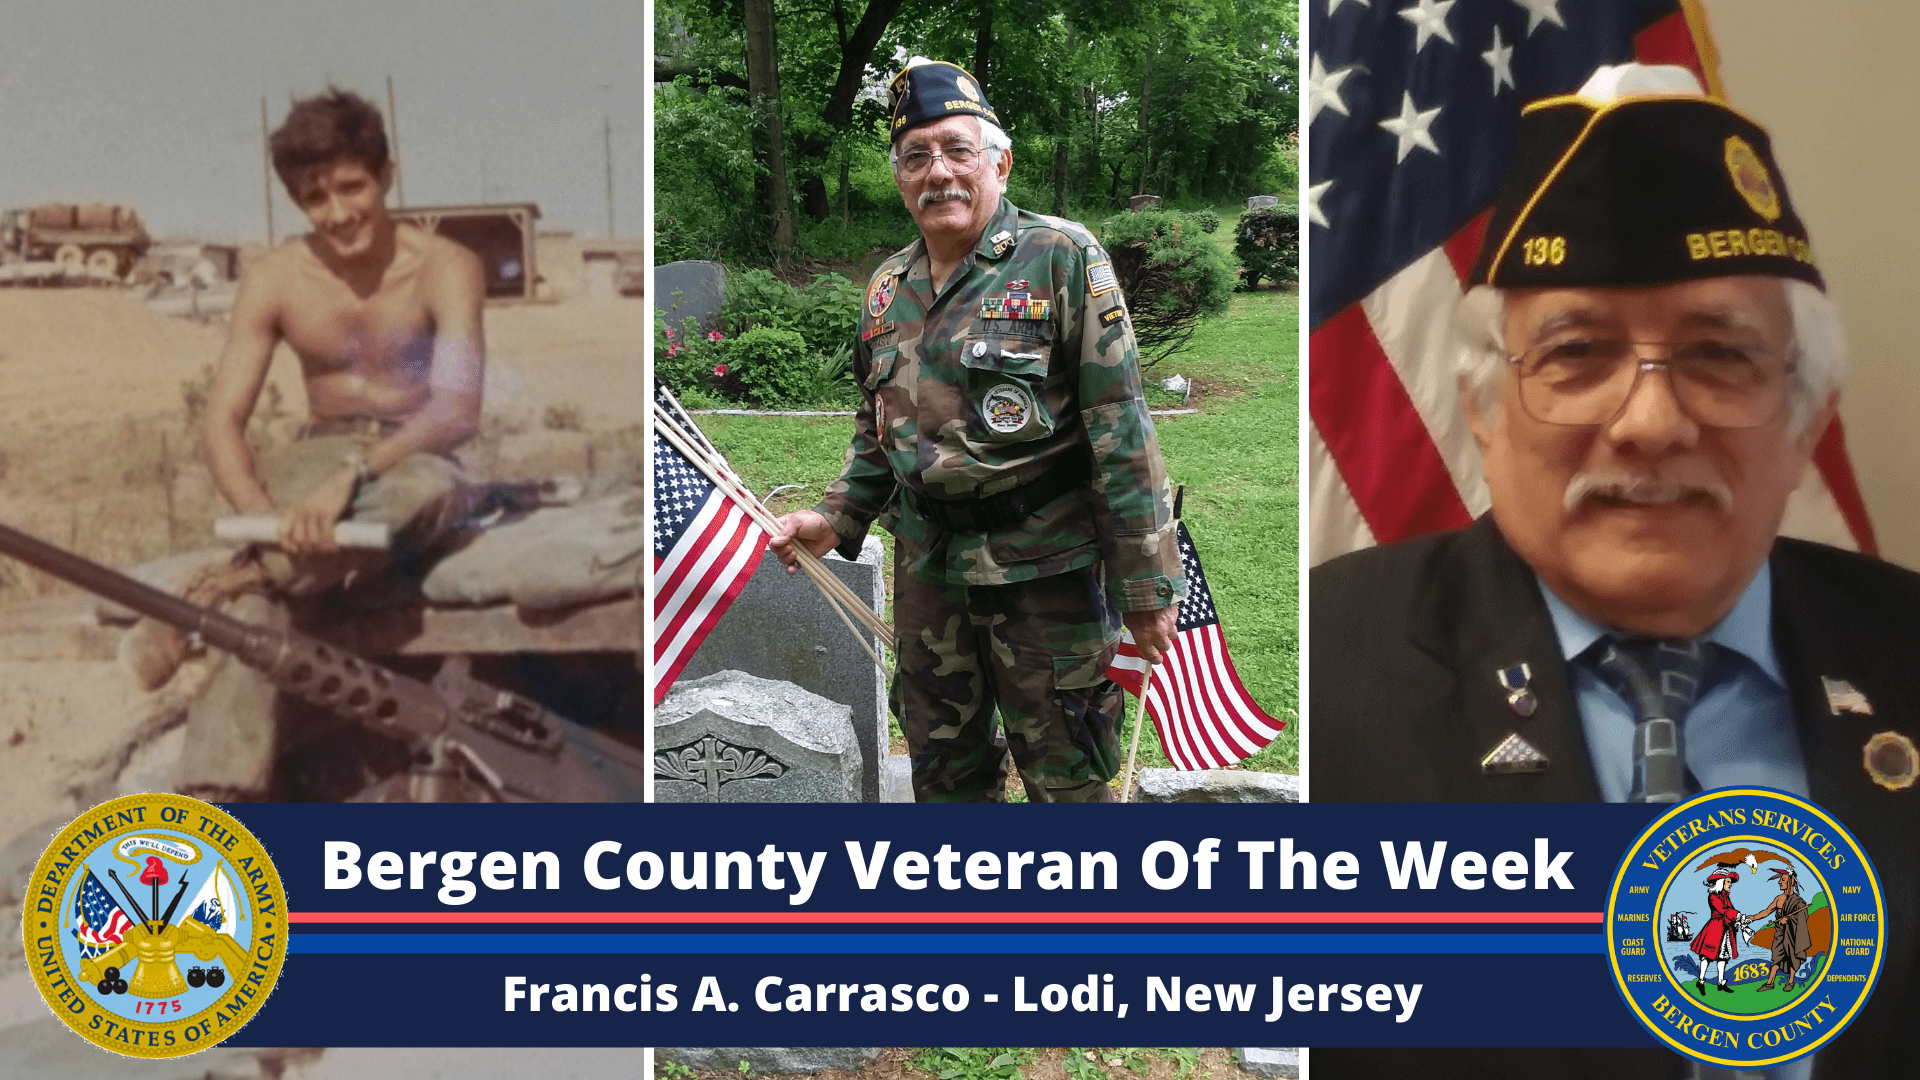 Bergen County Veteran of the Week: Francis A. Carrasco